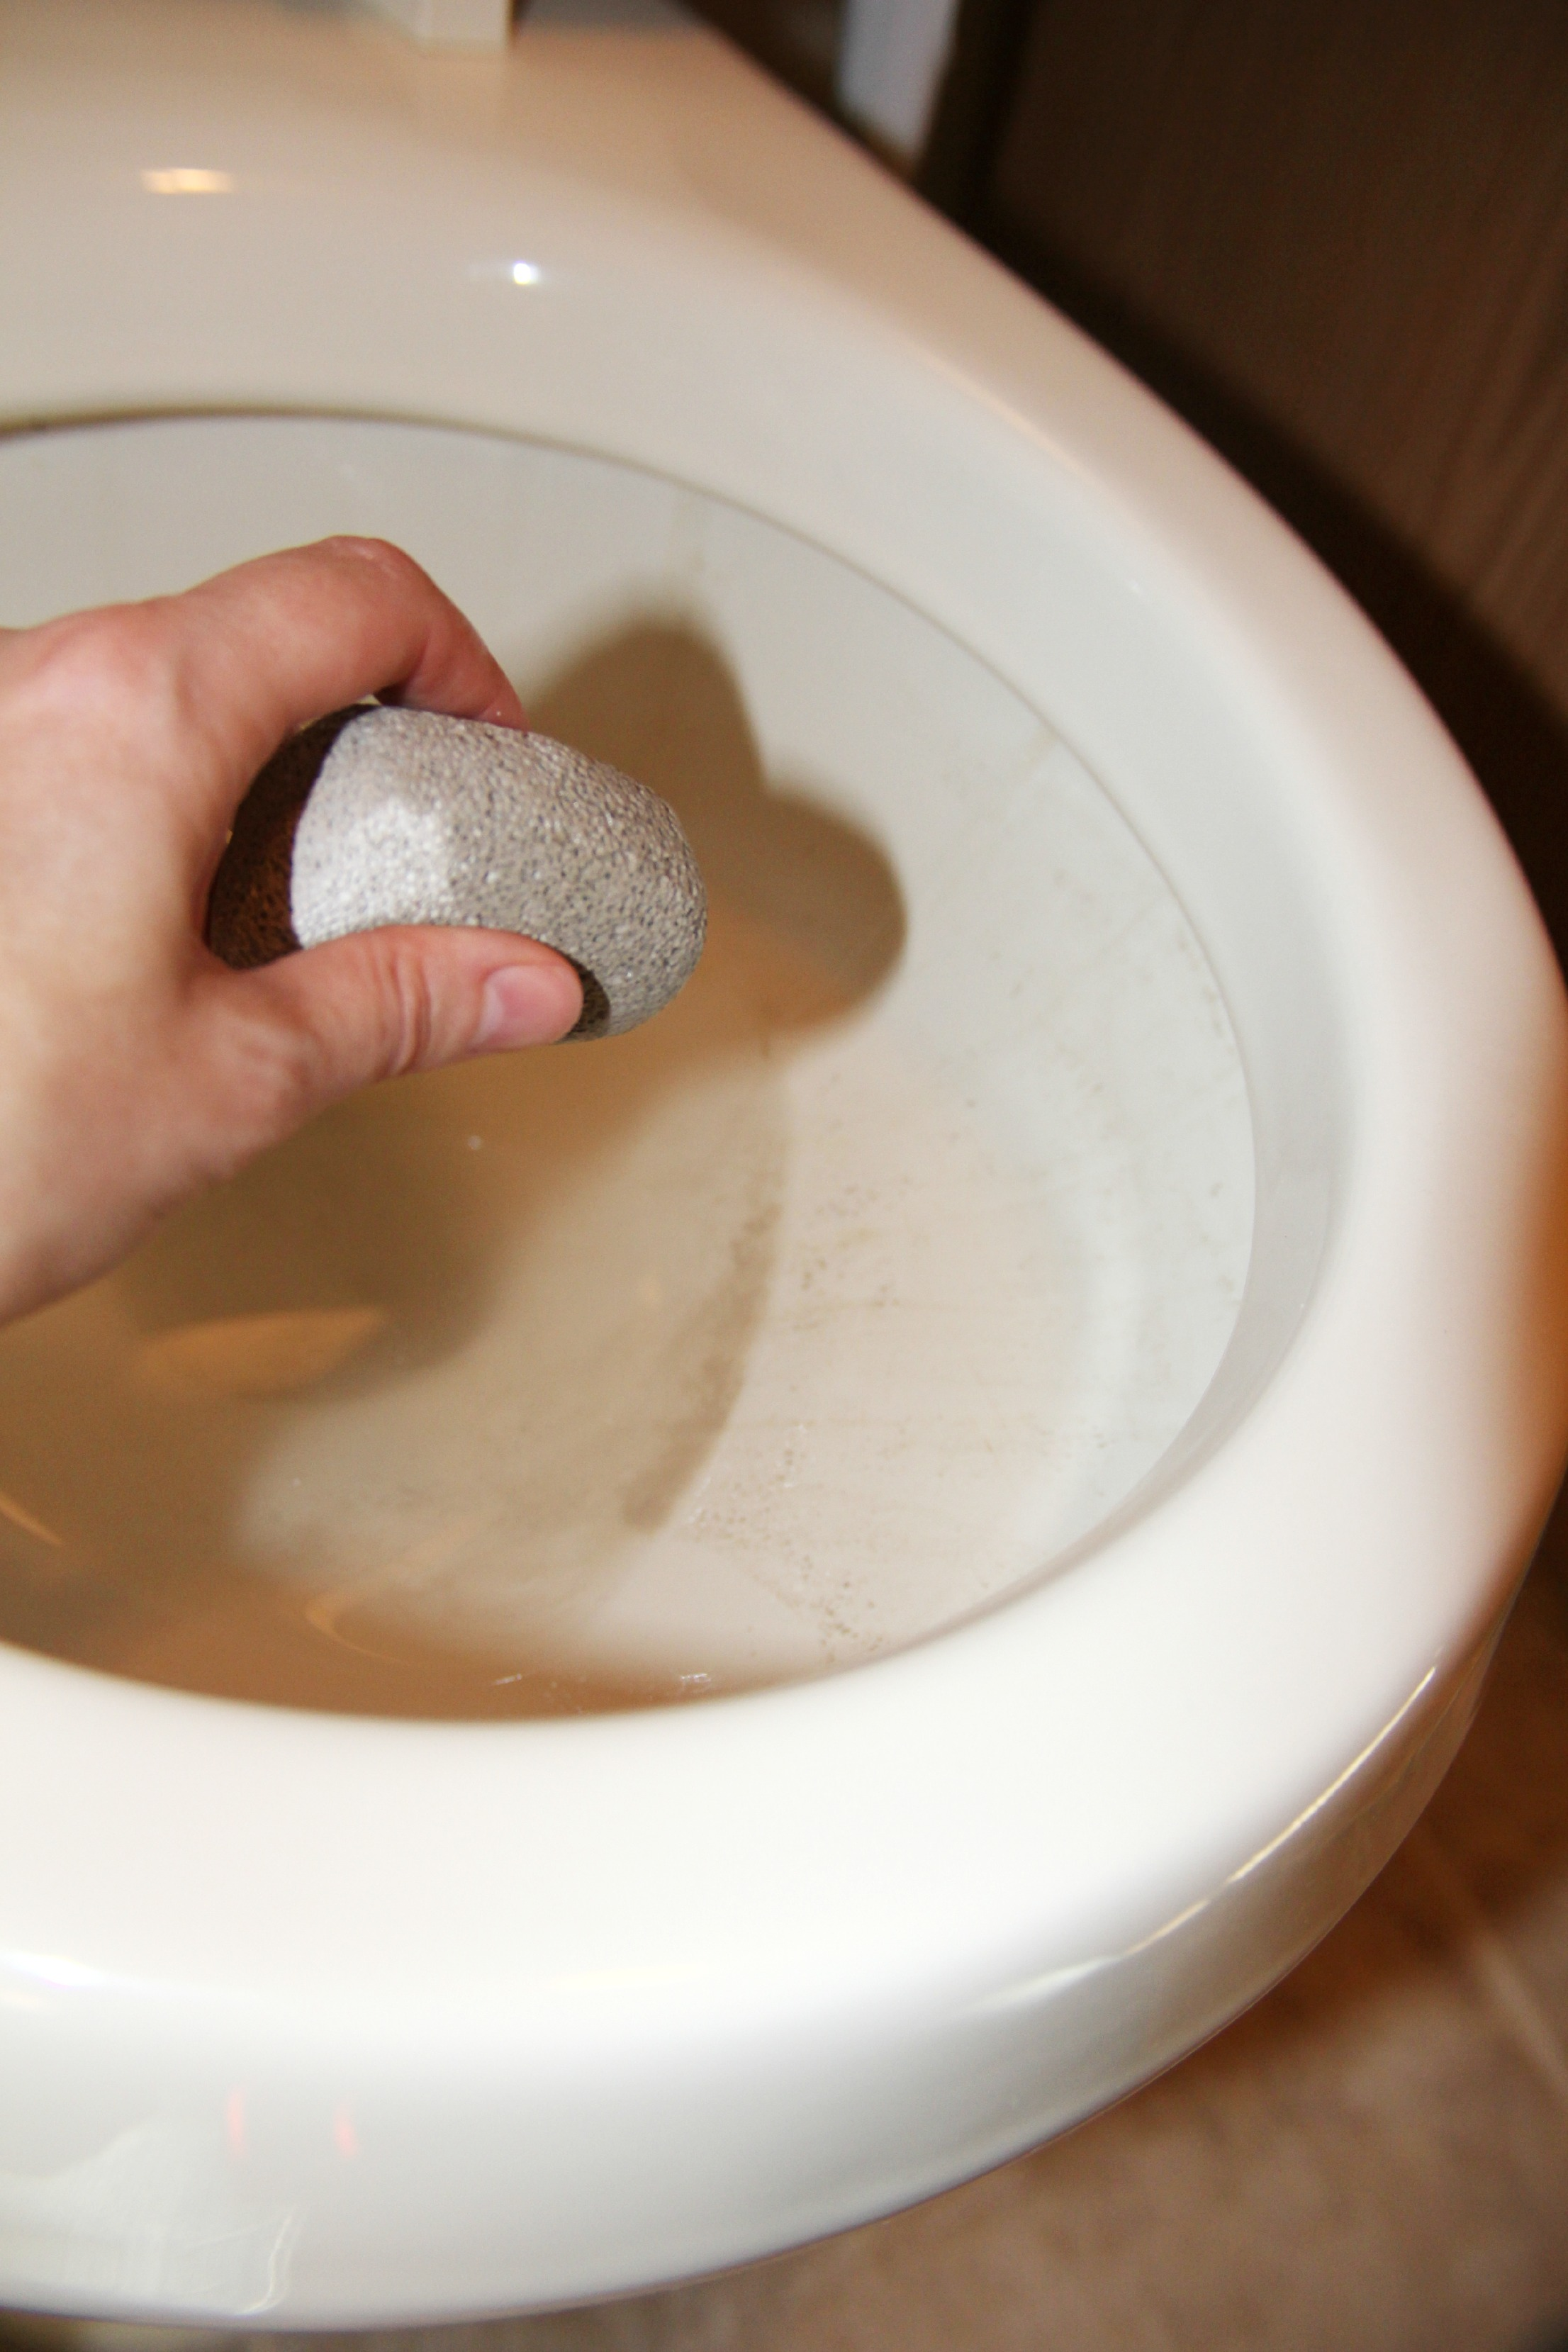 How to remove toilet stains. How to Remove Hard Water Stains From Your Toilet